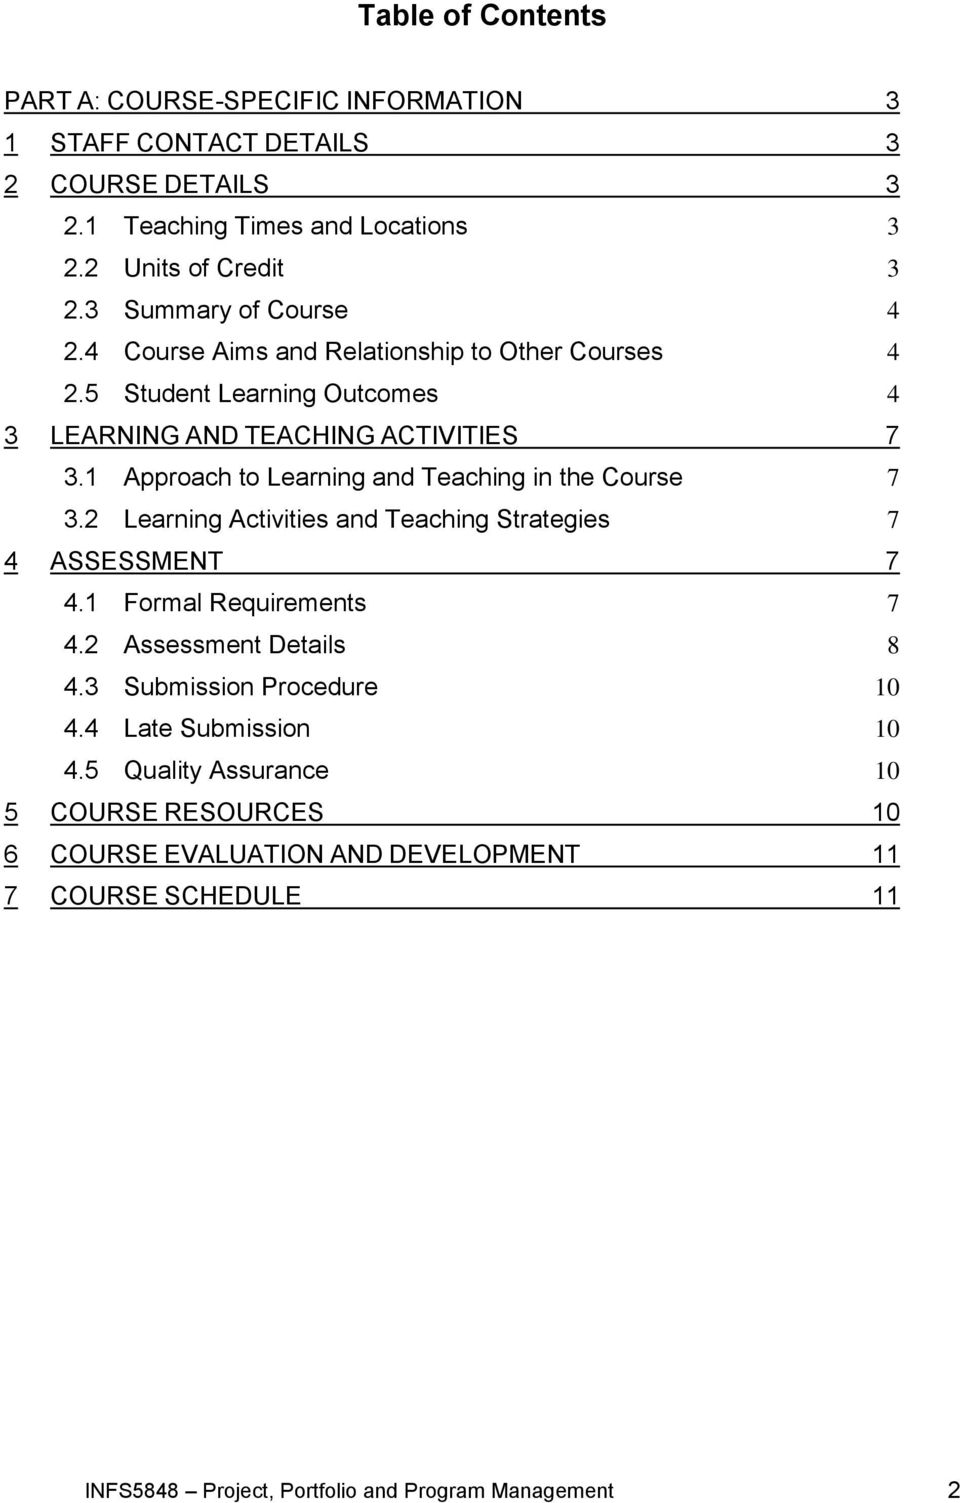 1 Approach to Learning and Teaching in the Course 7 3.2 Learning Activities and Teaching Strategies 7 4 ASSESSMENT 7 4.1 Formal Requirements 7 4.2 Assessment Details 8 4.